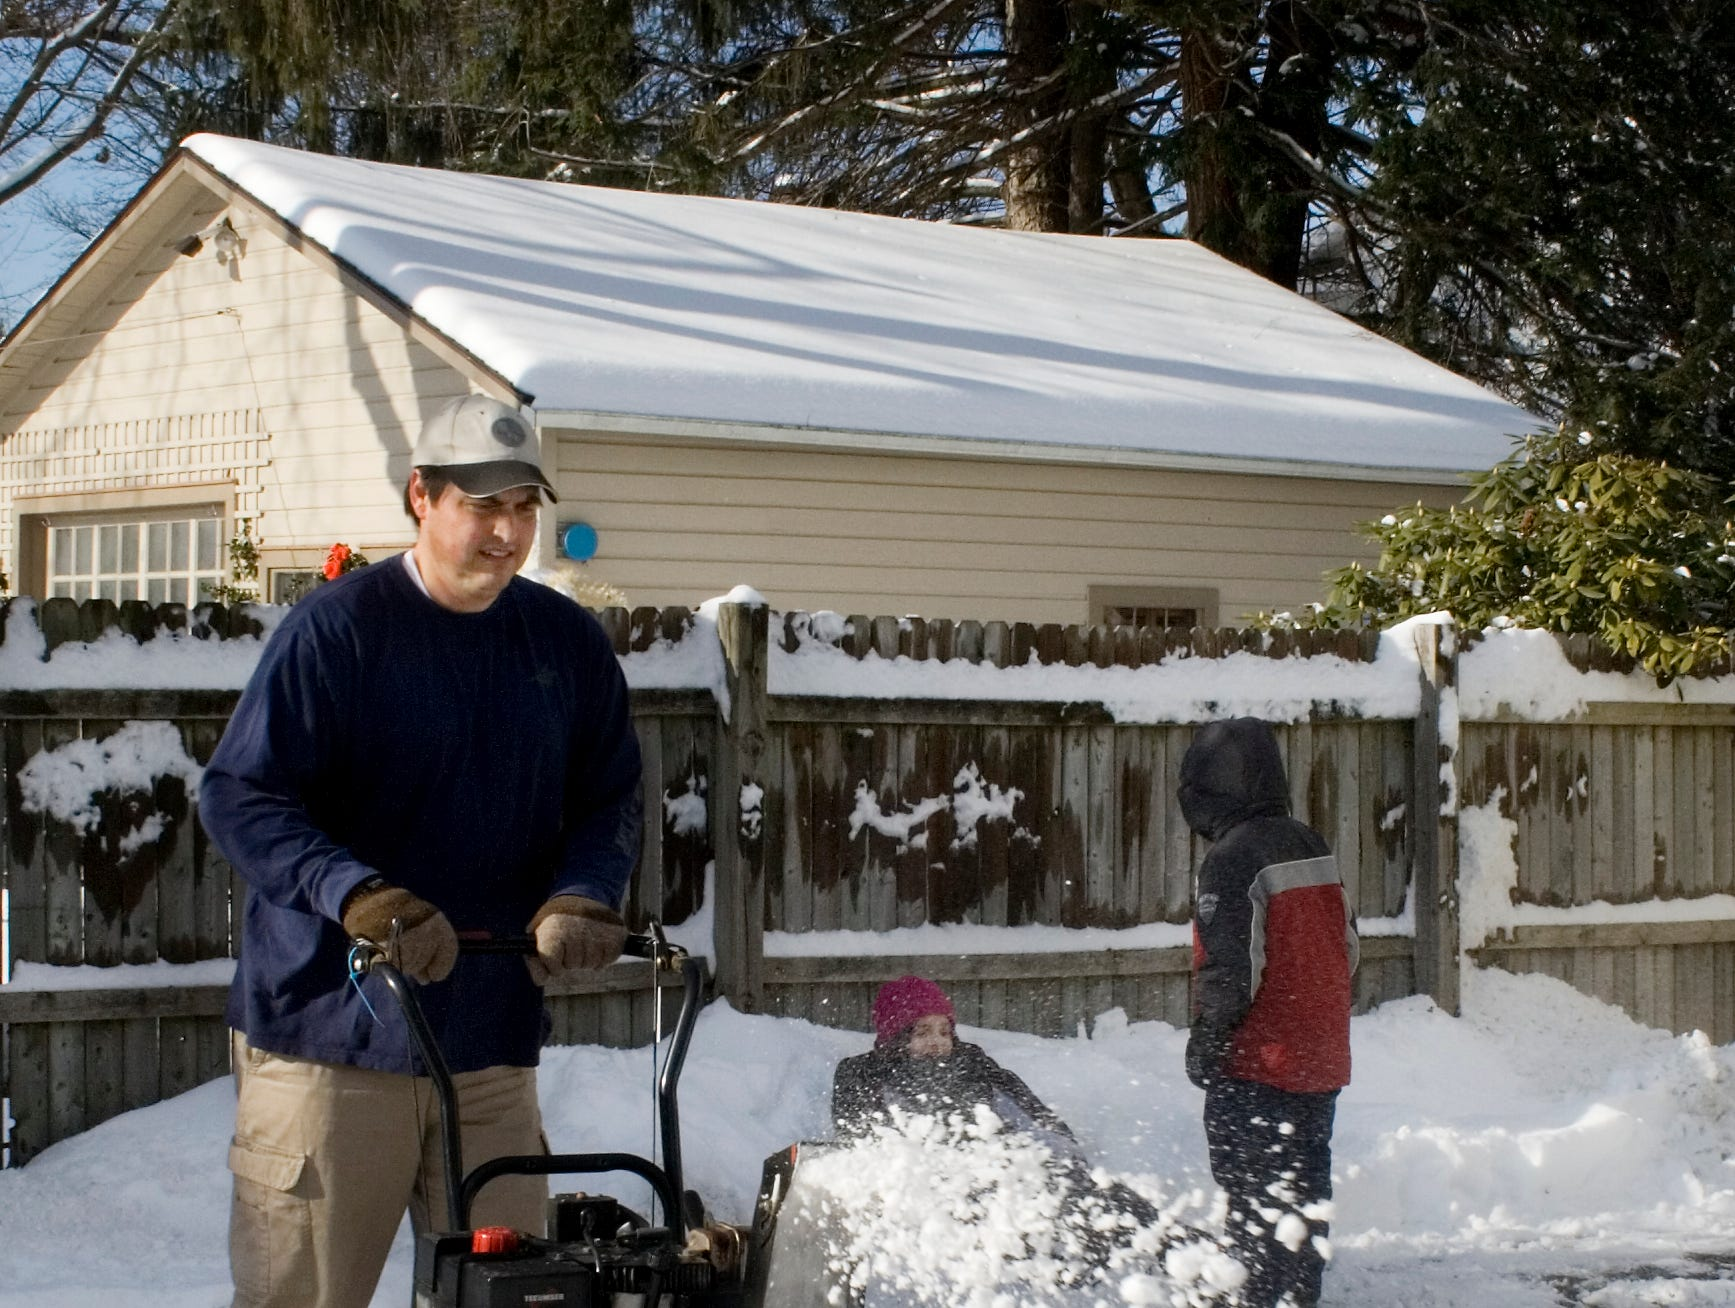 Roger Curtis of West Gray Street in West Elmira uses a snowblower to clear his driveway Sunday afternoon while his children Megan and Ethan play in the snowbank.